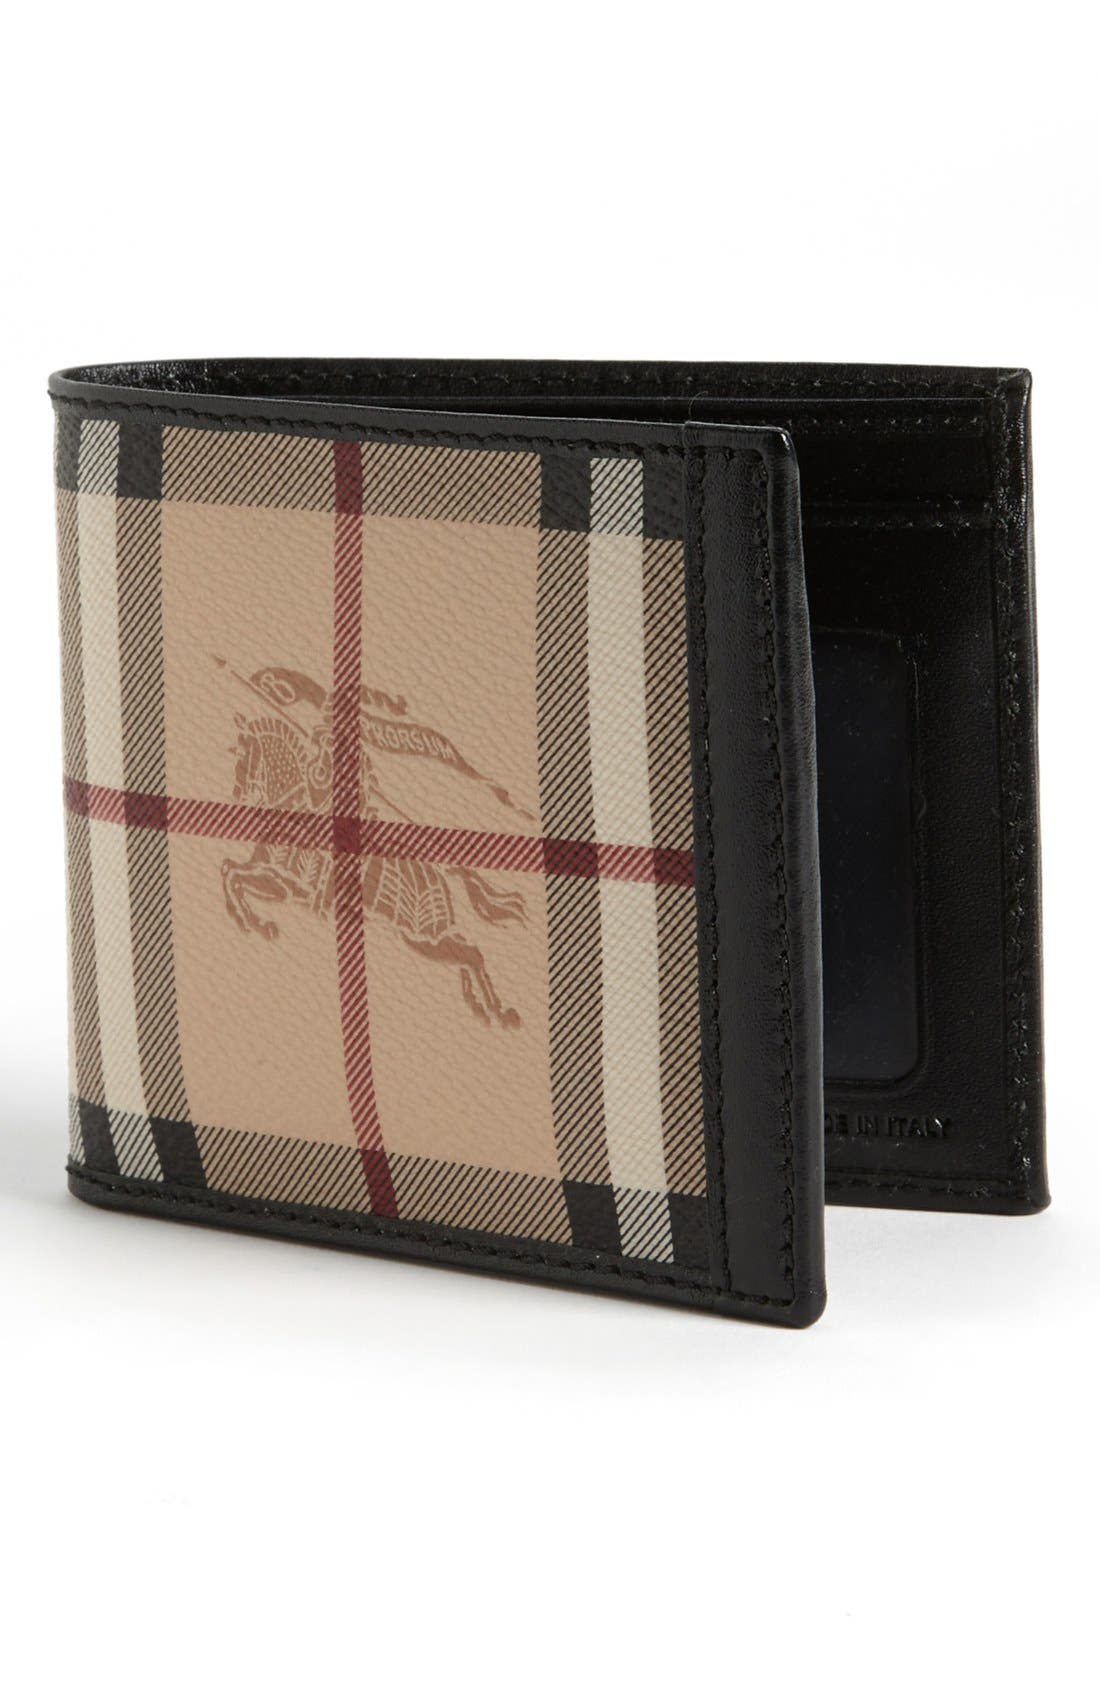 Main Image - Burberry Logo & Checks Billfold Wallet